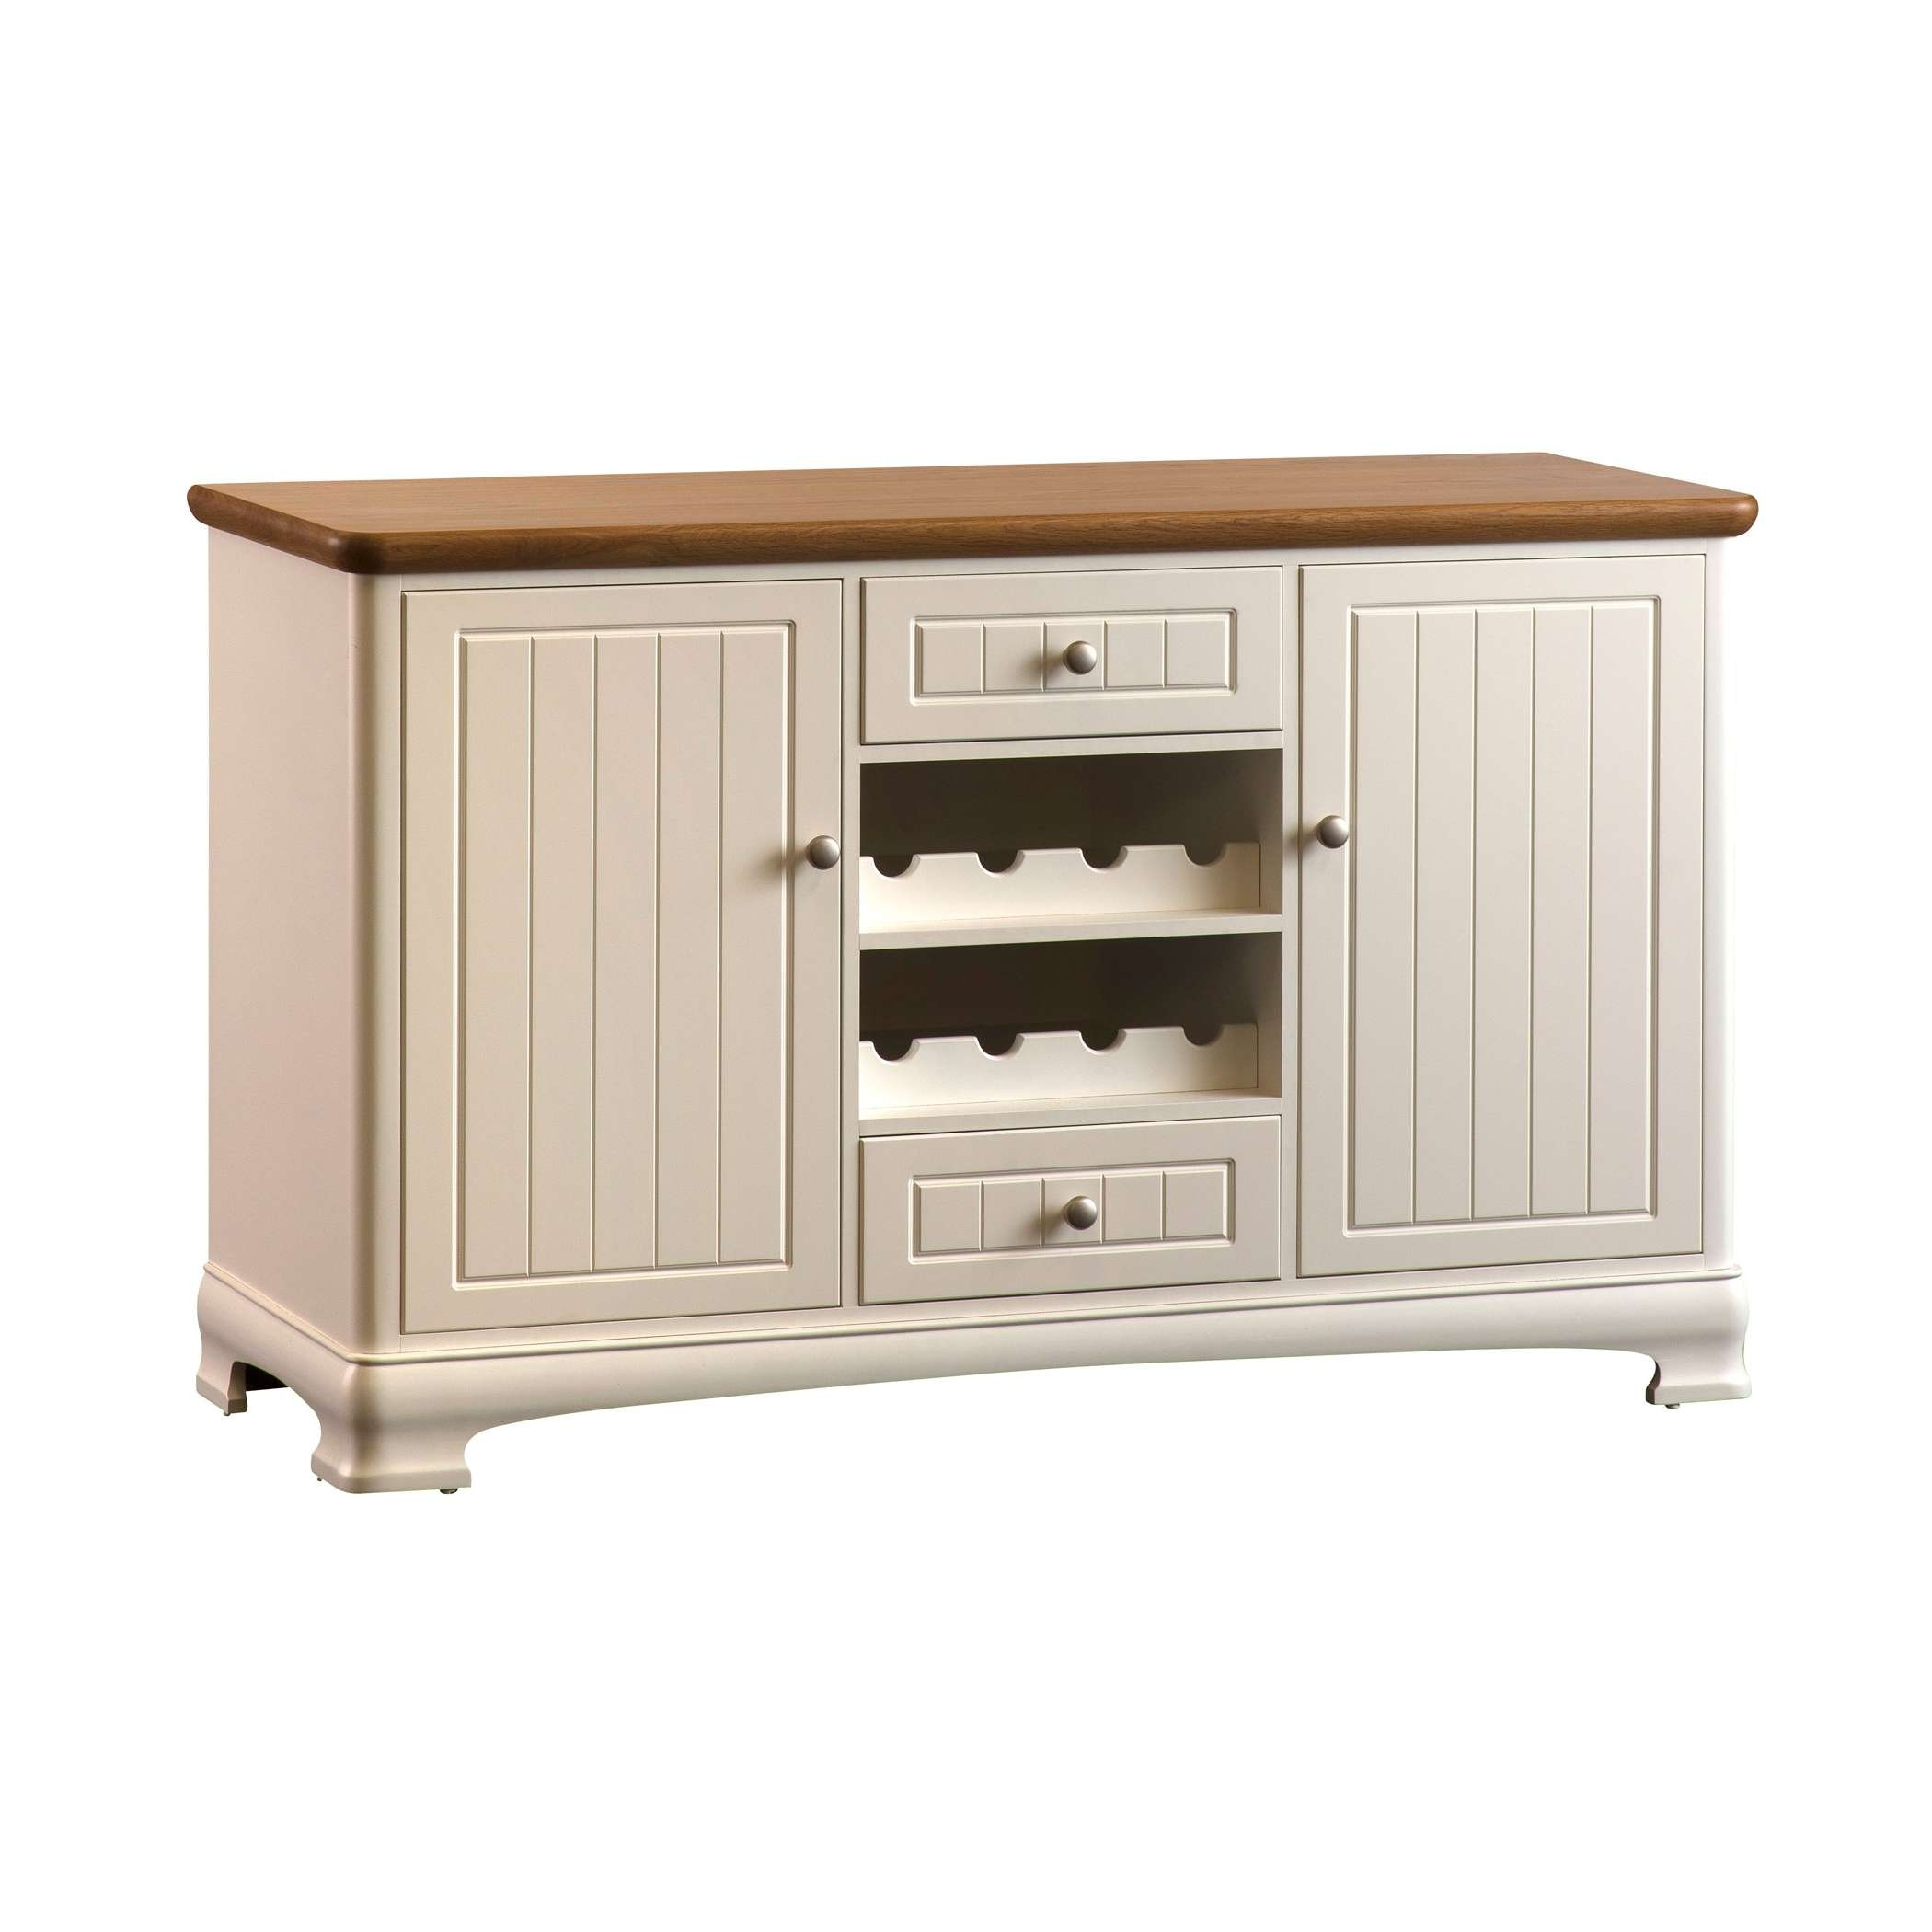 Painted Large Sideboard With Wine Rack | Gola Furniture Uk Inside Sideboards With Wine Rack (View 13 of 20)